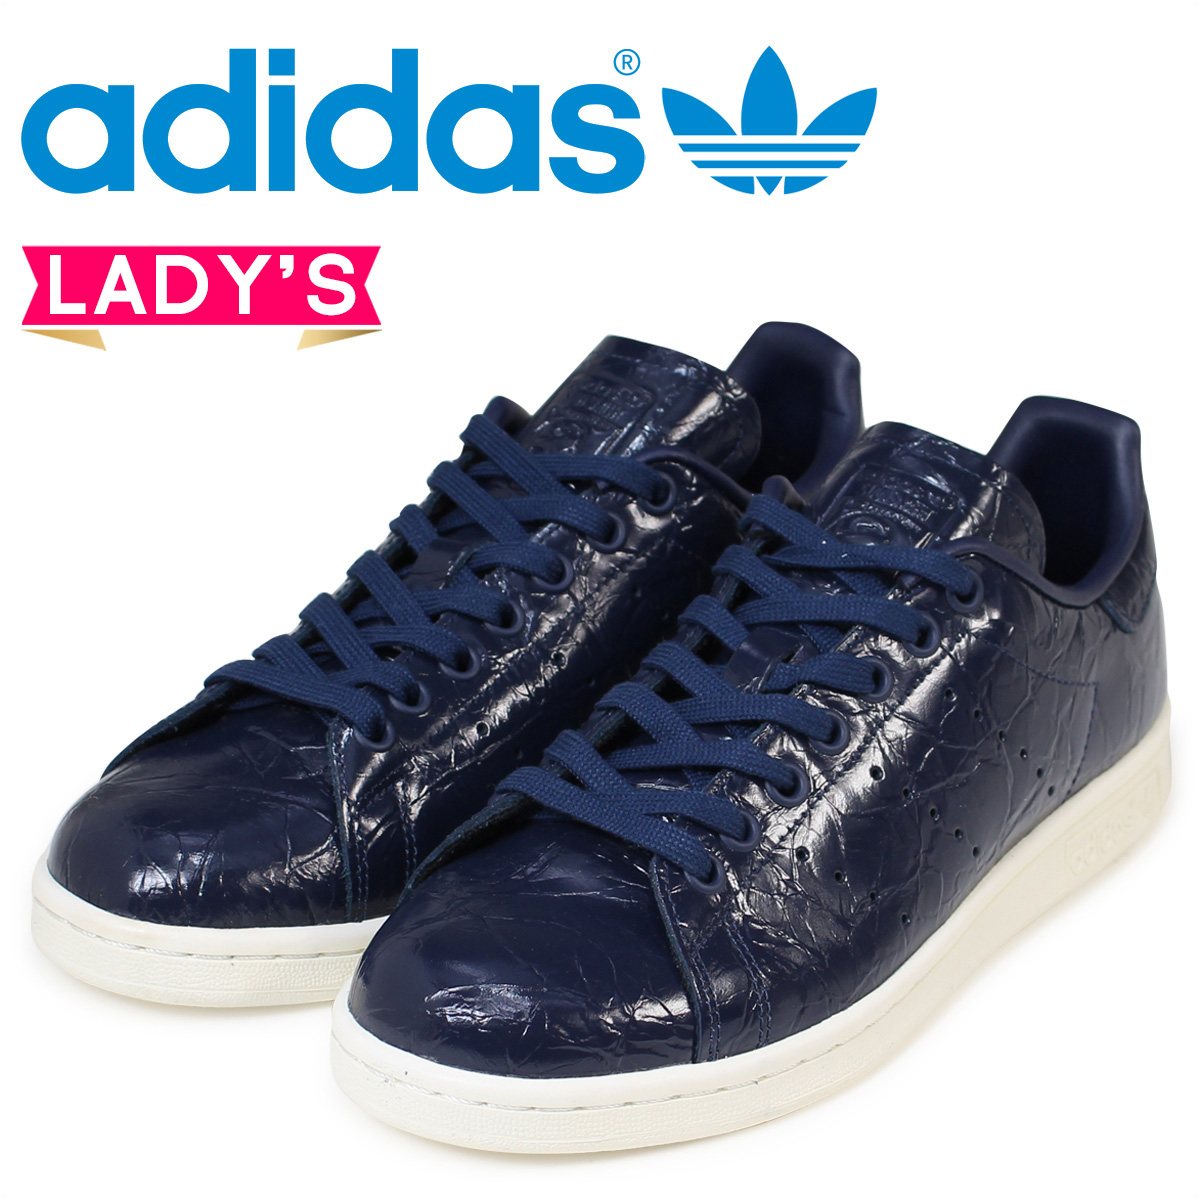 b66d212e5cd854 ALLSPORTS  Adidas Stan Smith Lady s sneakers adidas originals STAN SMITH W  BB5163 shoes navy originals  1 17 Shinnyu load    Rakuten Global Market